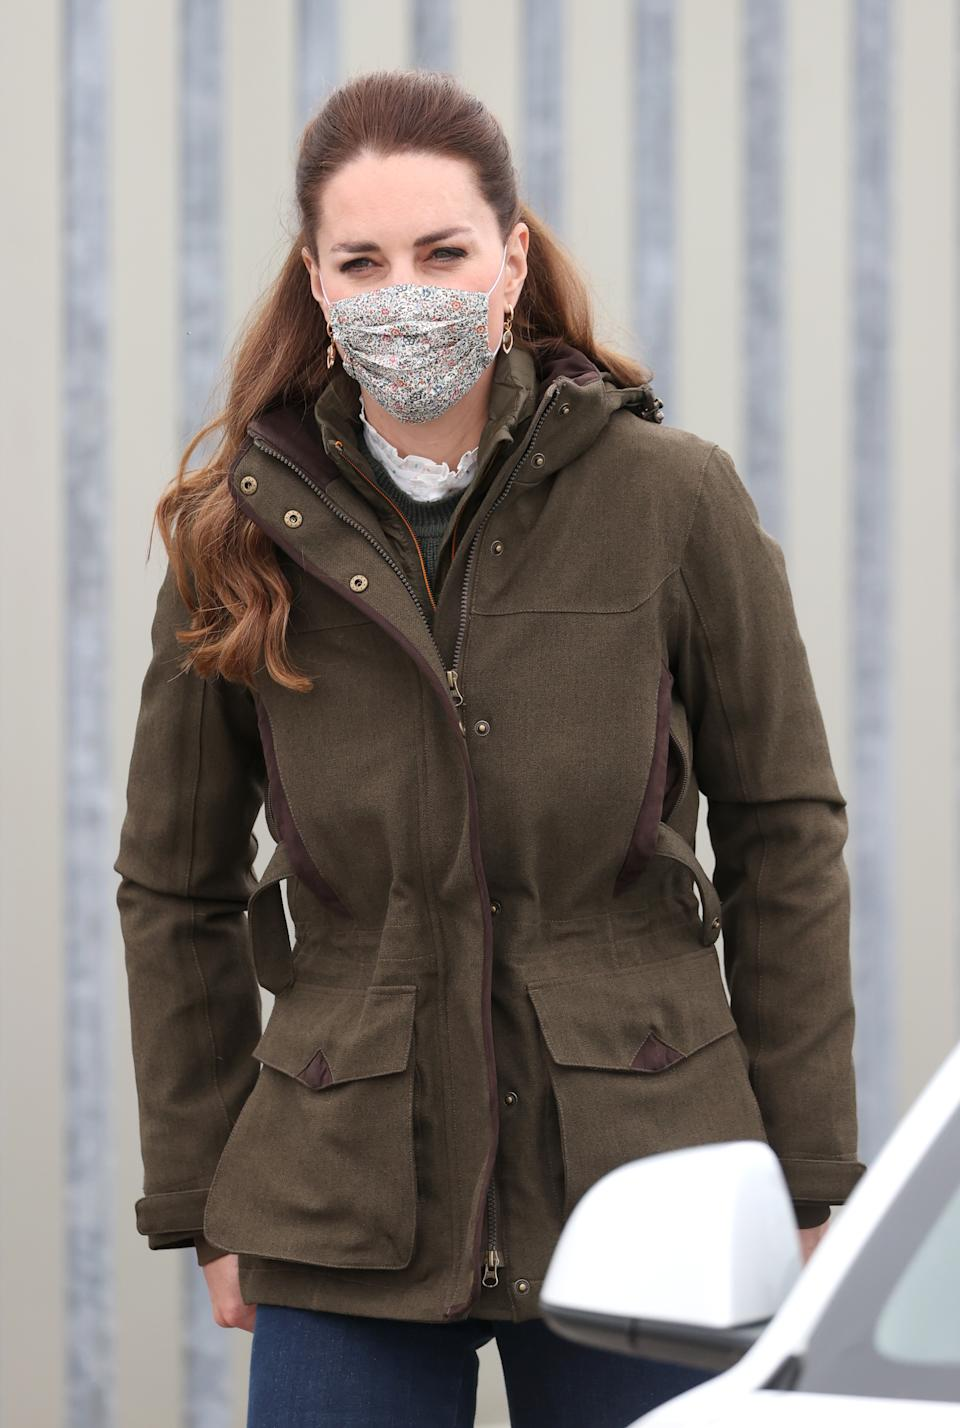 The Duchess of Cambridge's pie-crust shirt could be seen underneath her jumper. (Getty Images)